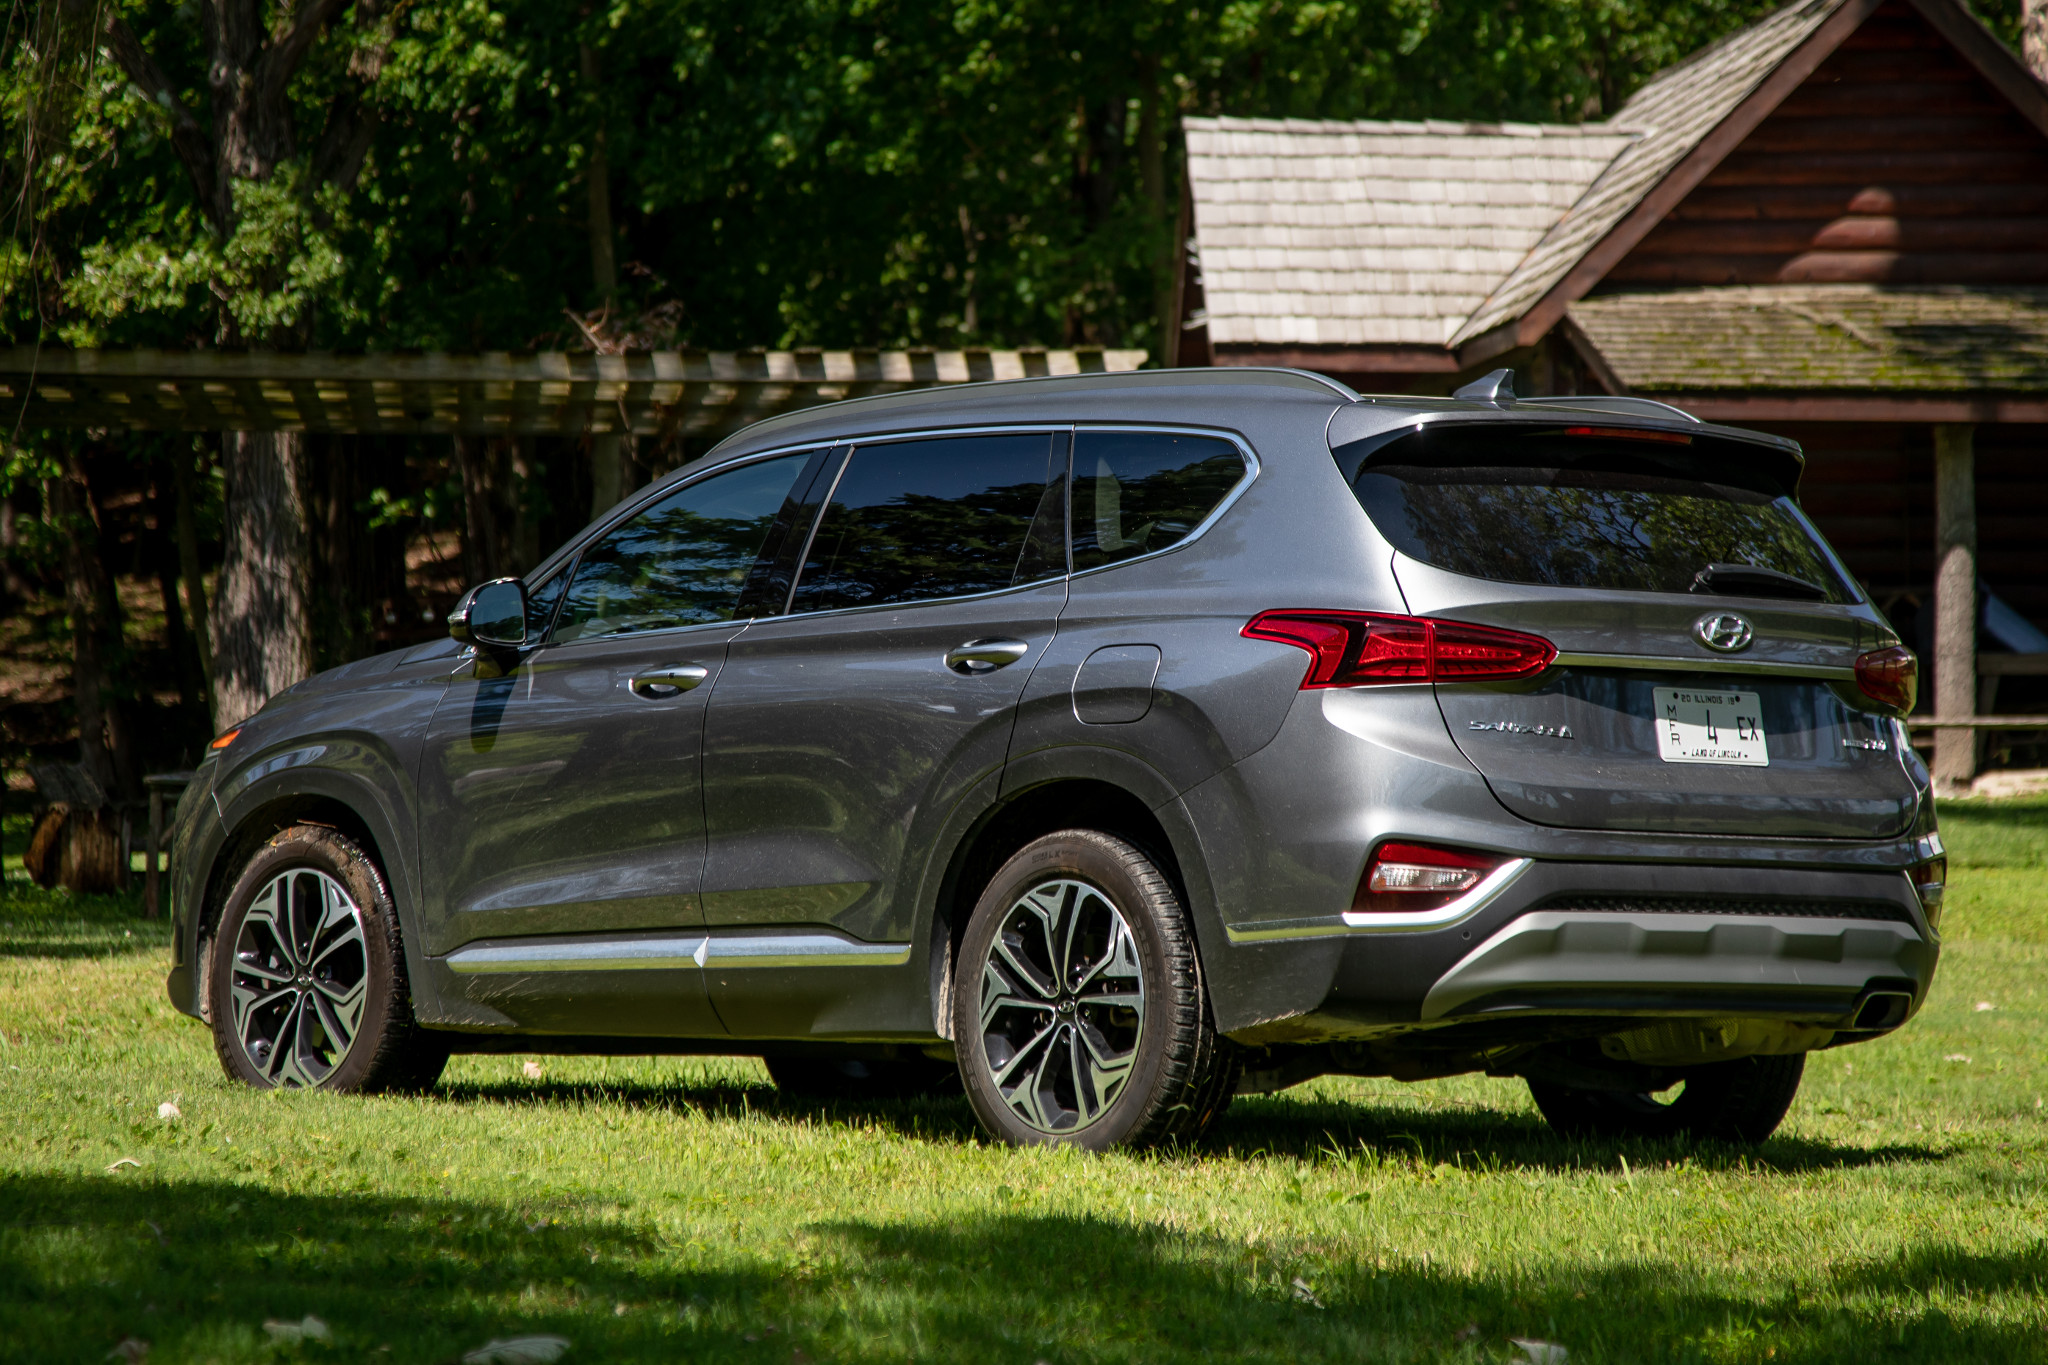 2019 Hyundai Santa Fe: Everything You Need to Know